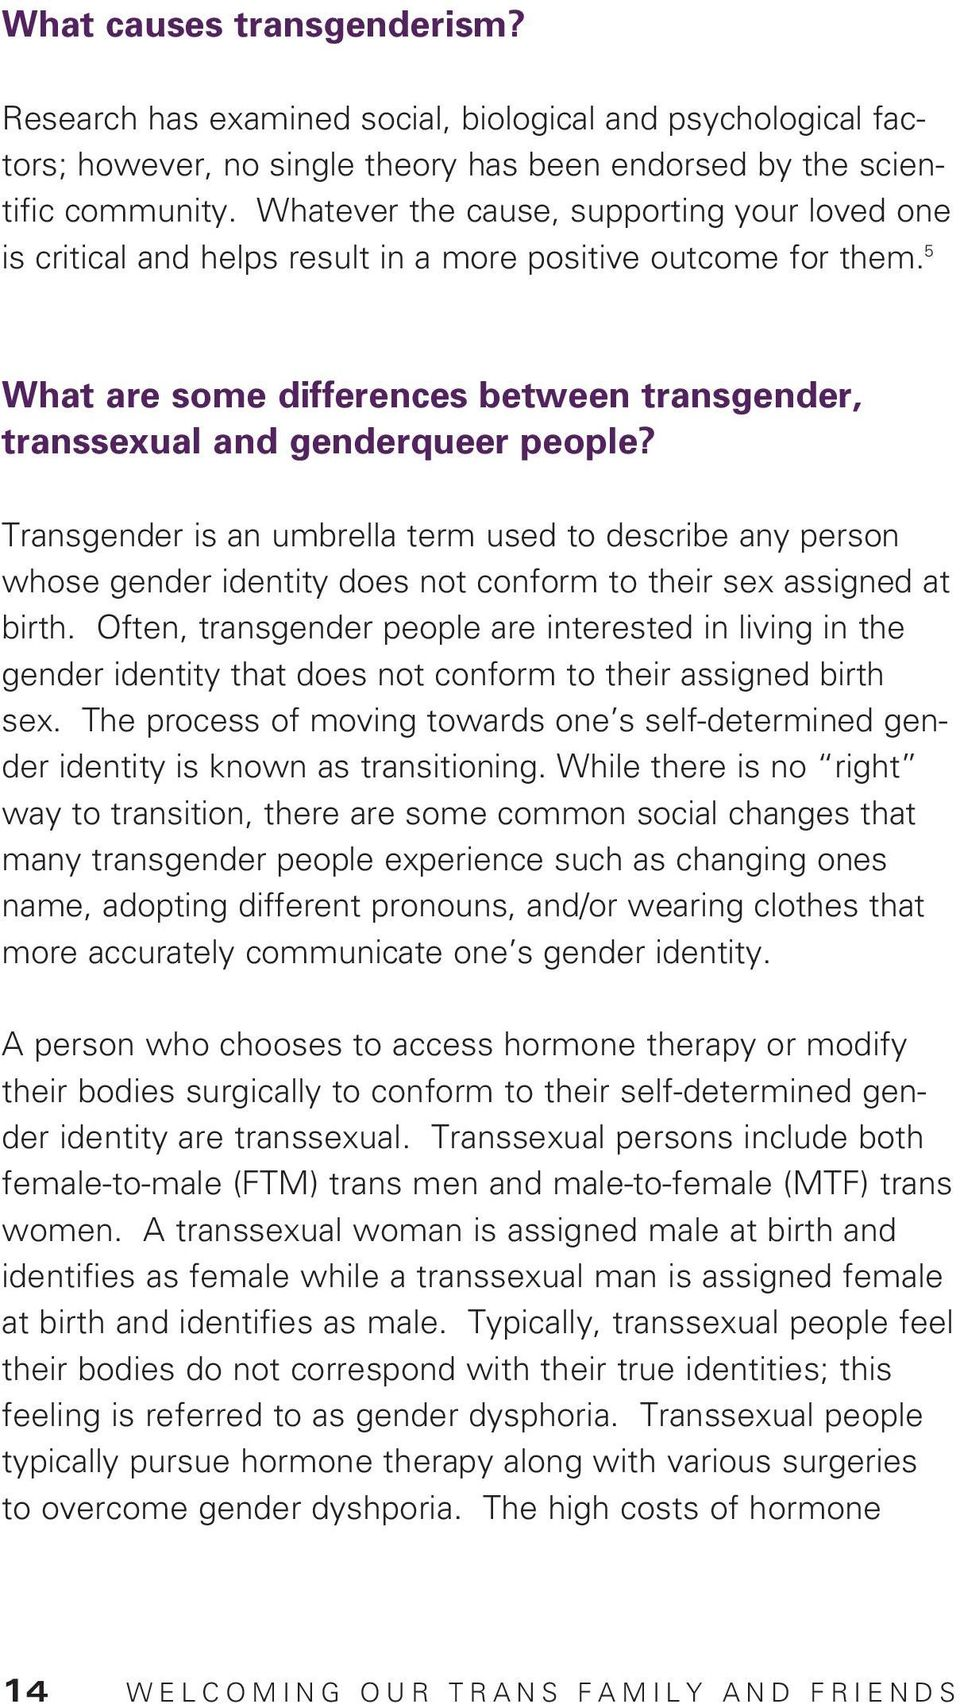 Transgender is an umbrella term used to describe any person whose gender identity does not conform to their sex assigned at birth.